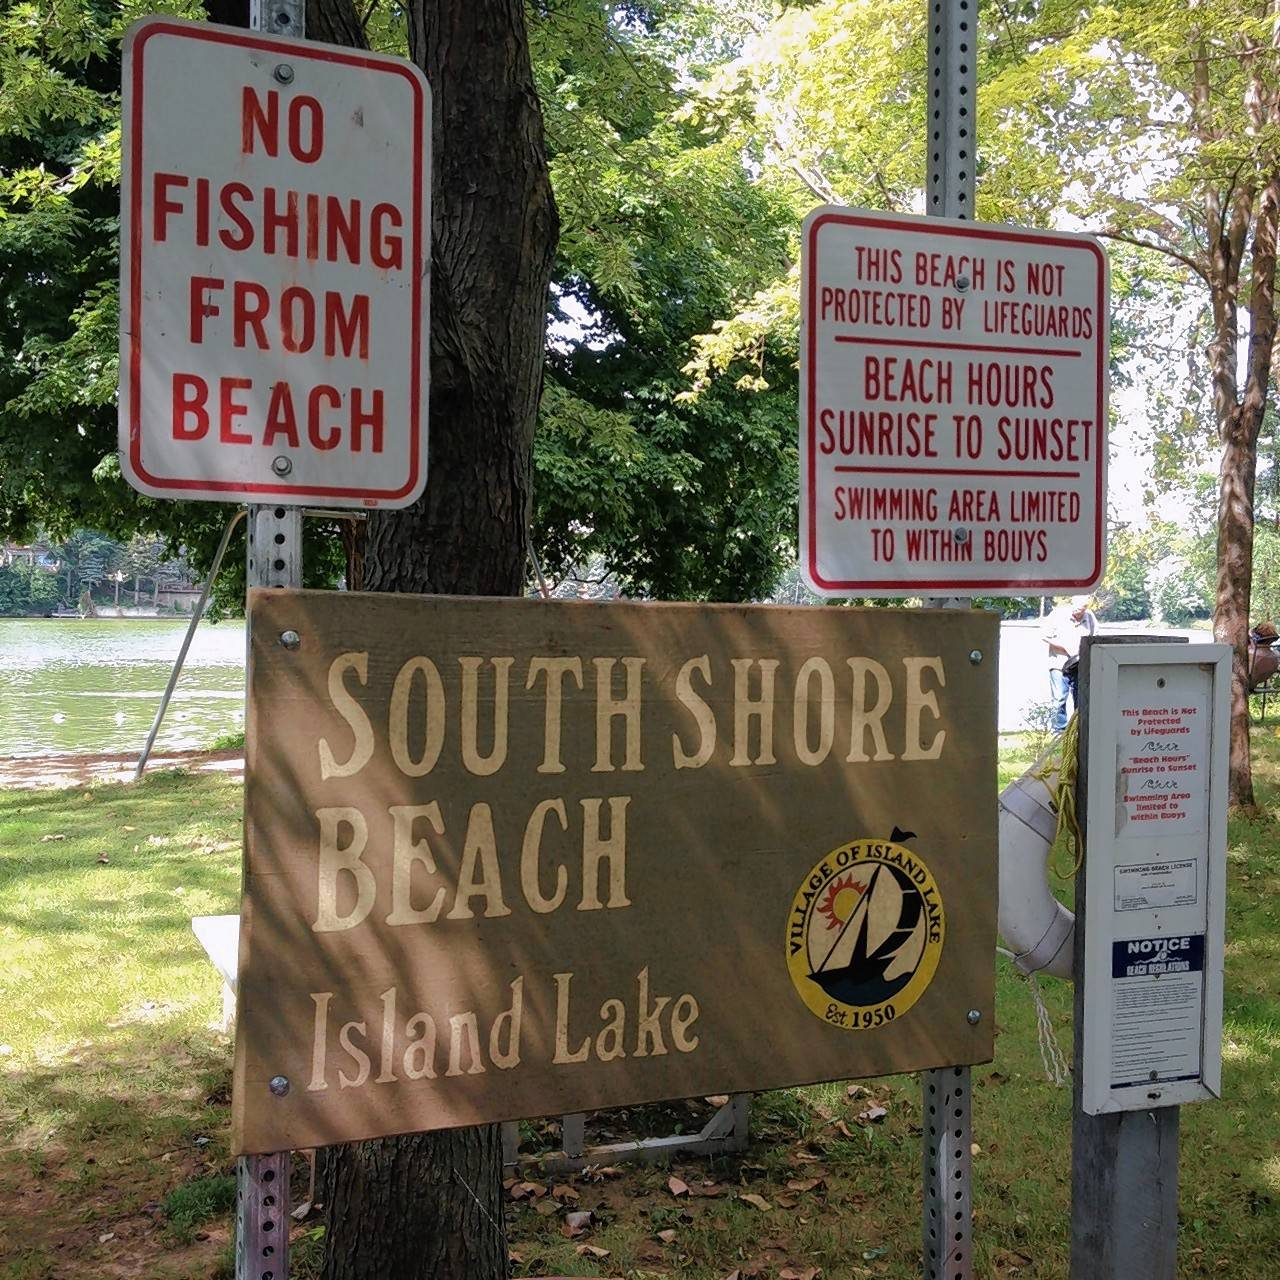 Plenty of guidance for patrons visiting one of the many public beaches in Island Lake.